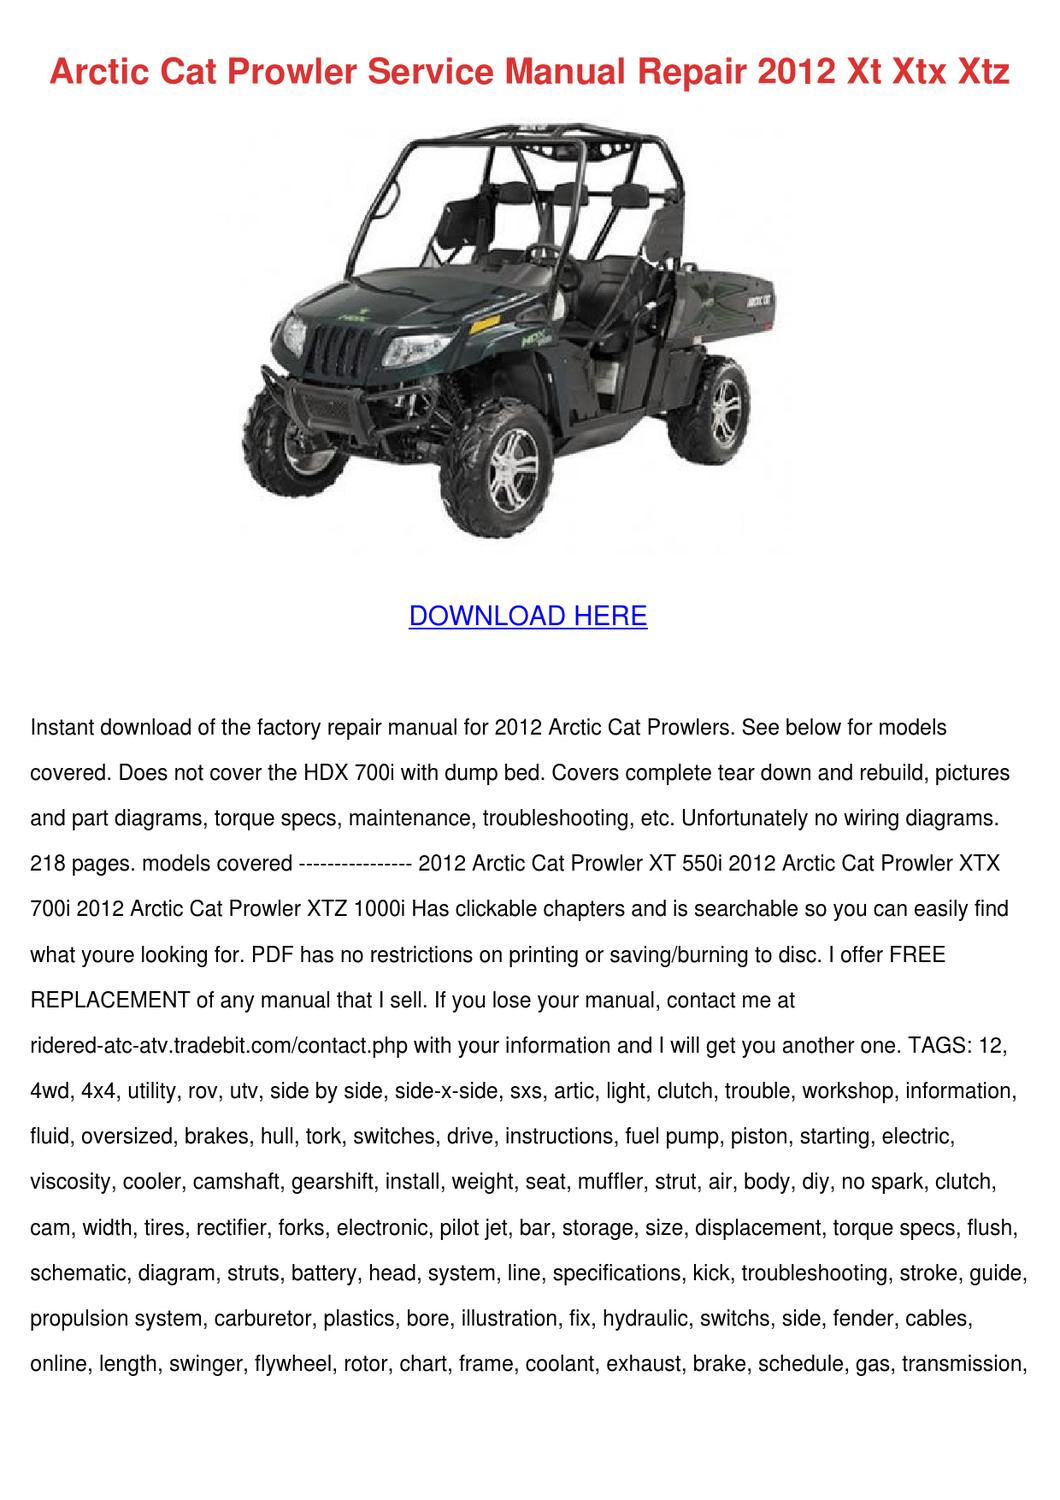 Arctic Cat Prowler Service Manual Repair 2012 By Princess